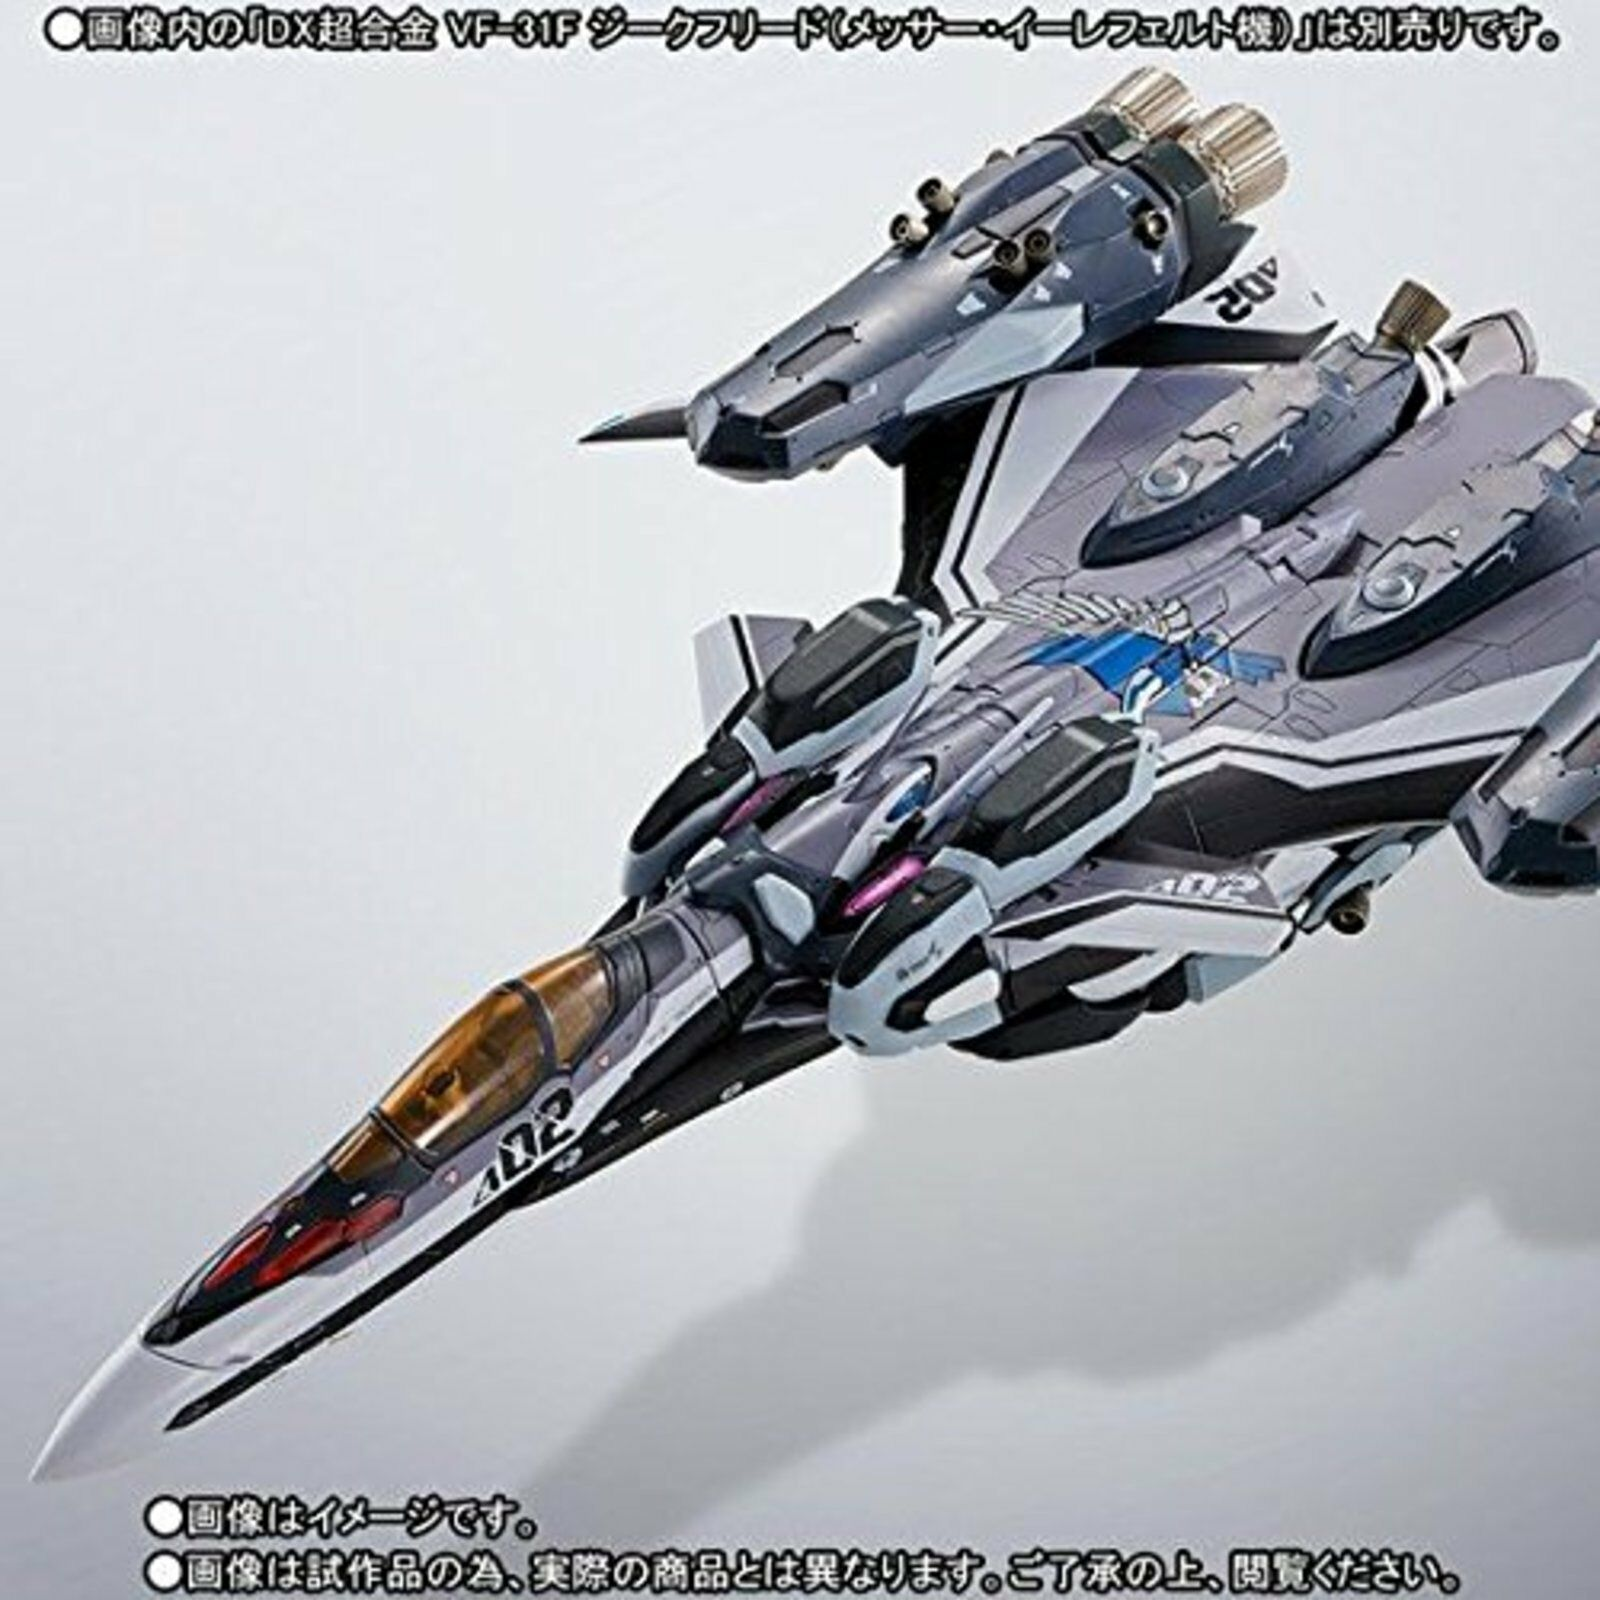 DX Chogokin MACROSS VF-31F SIEGFRIED SUPER PARTS SET For MESSER IHLEFELD F/S NEW